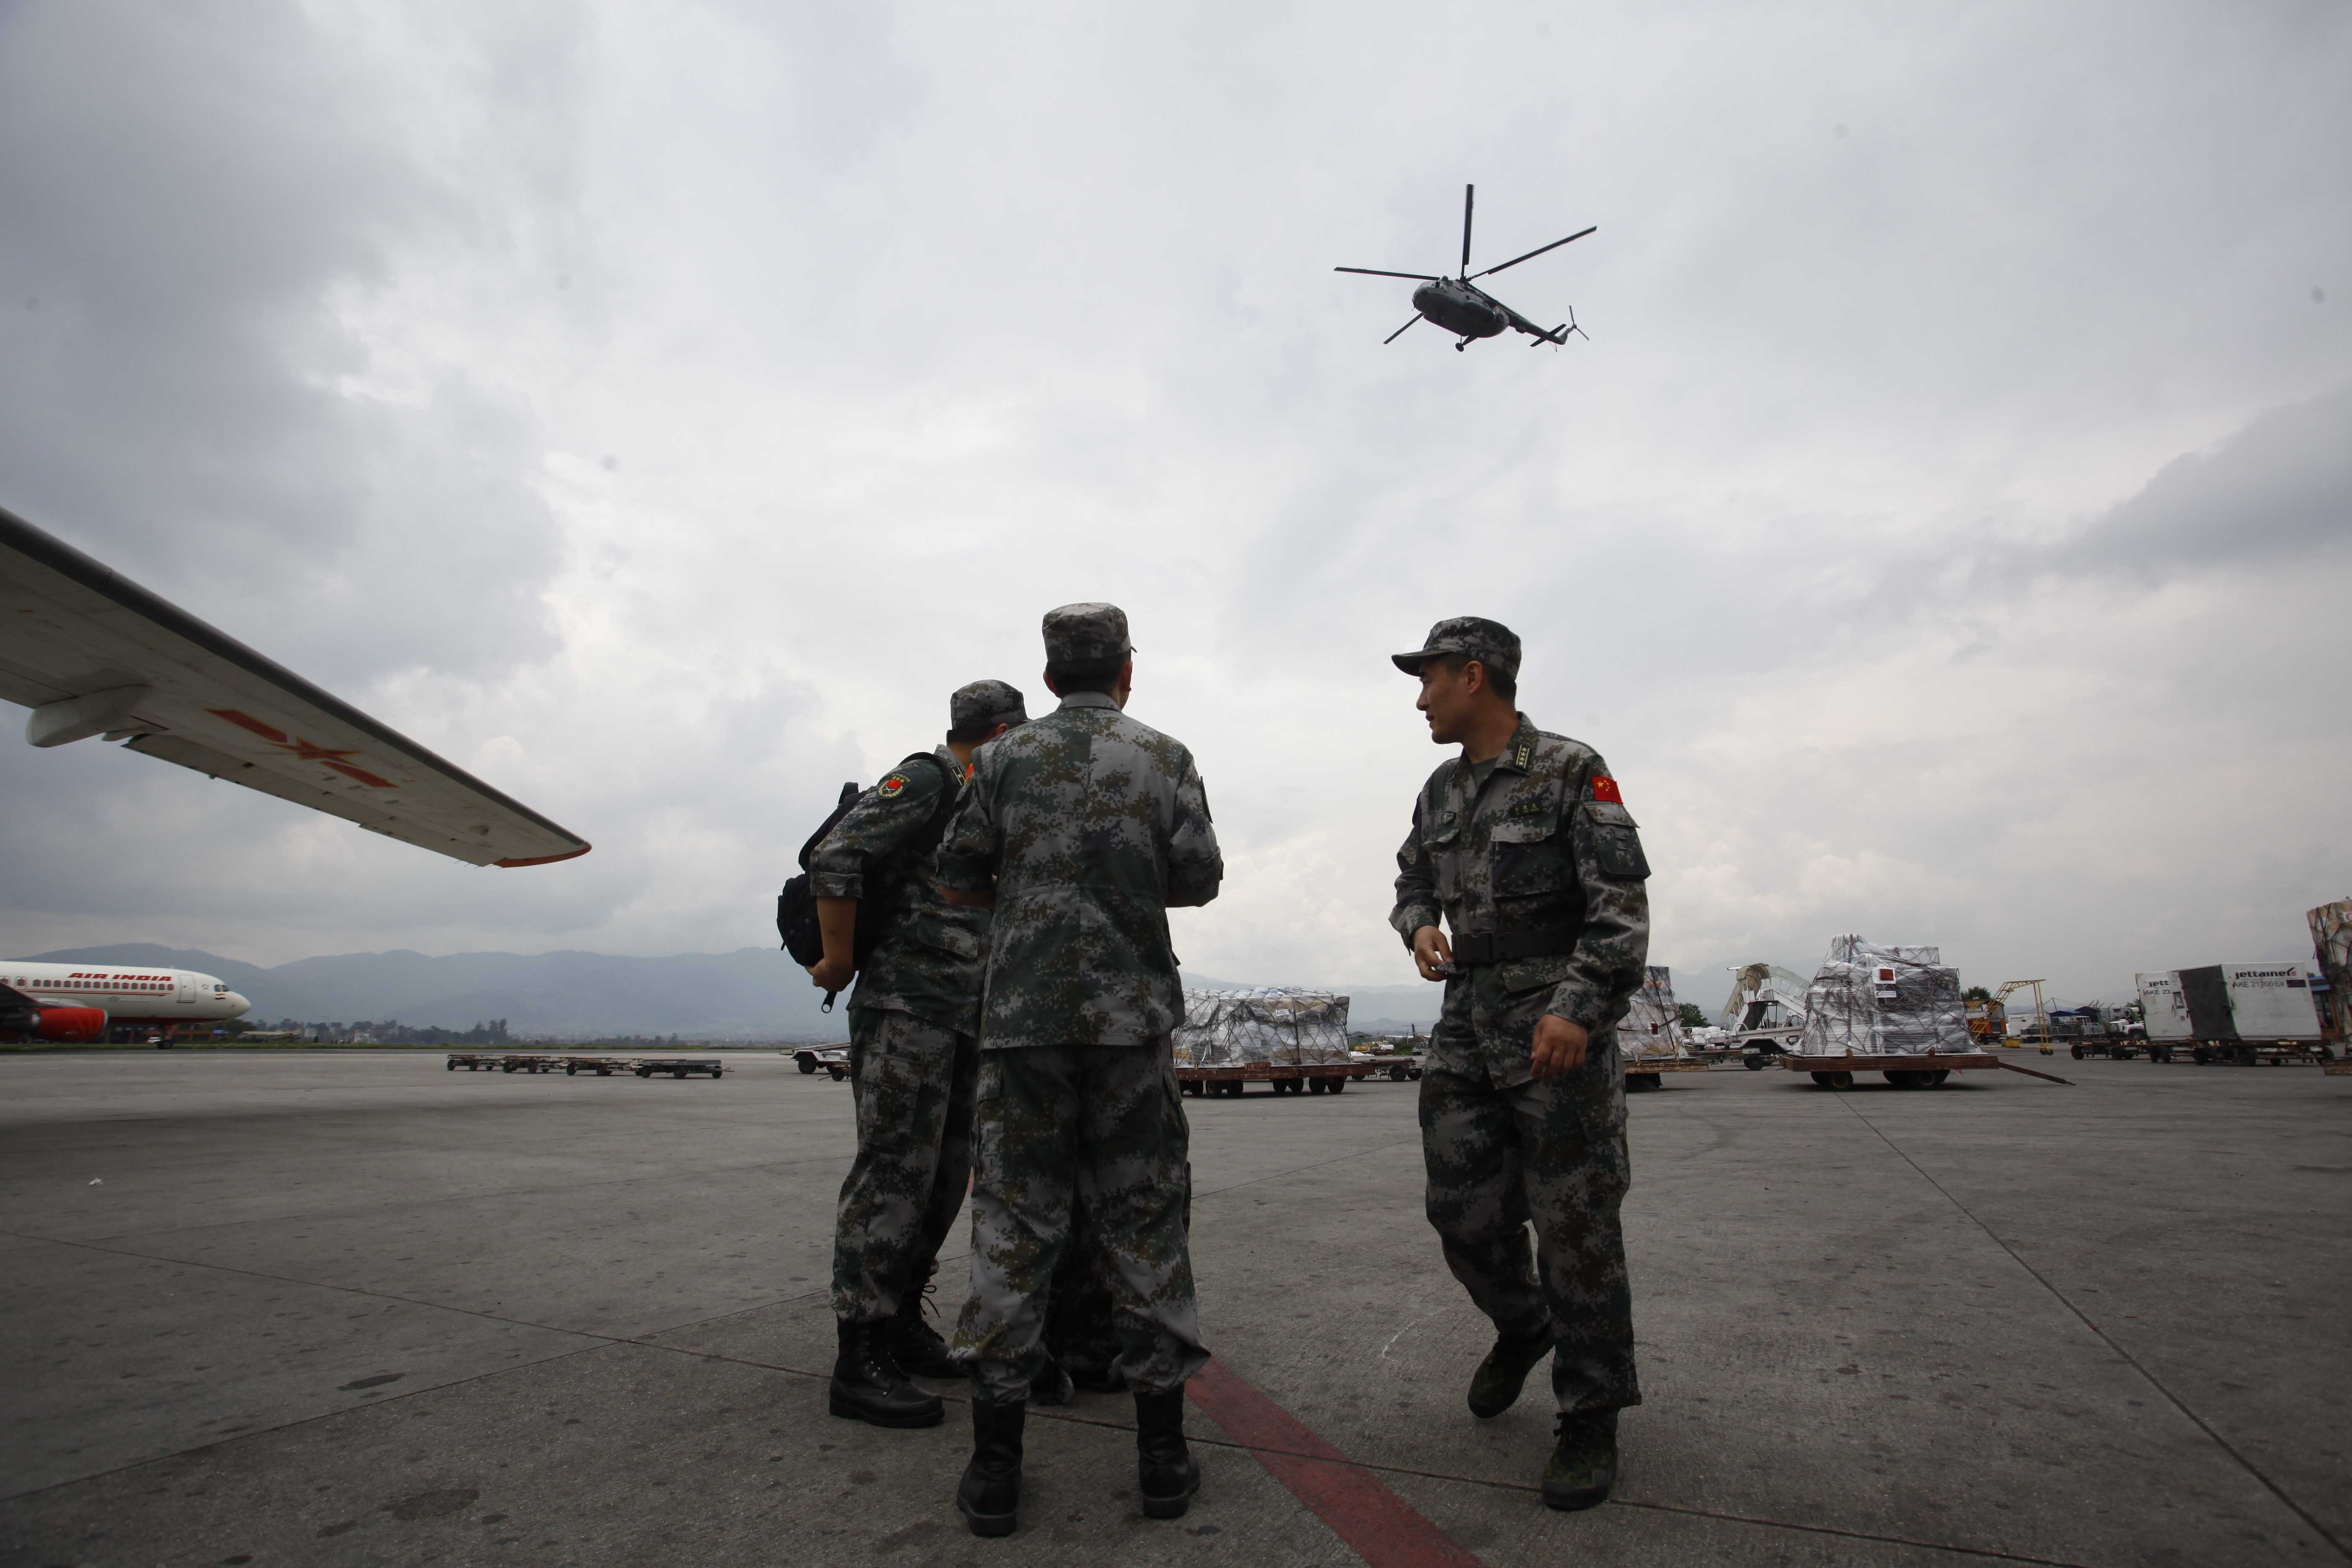 Members of Chinese People's Liberation Army Air Force arrive in Nepal to provide aid following Saturday's earthquake at Tribhuvan International Airport in Kathmandu, Nepal on April 28, 2015.